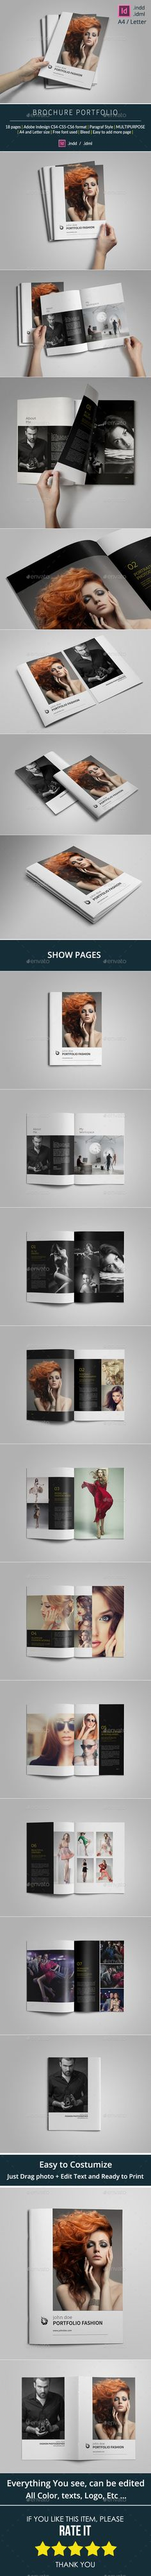 Brochure Portfolio Template — InDesign INDD #photography album #layout • Available here → https://graphicriver.net/item/brochure-portfolio-template/10342441?ref=pxcr